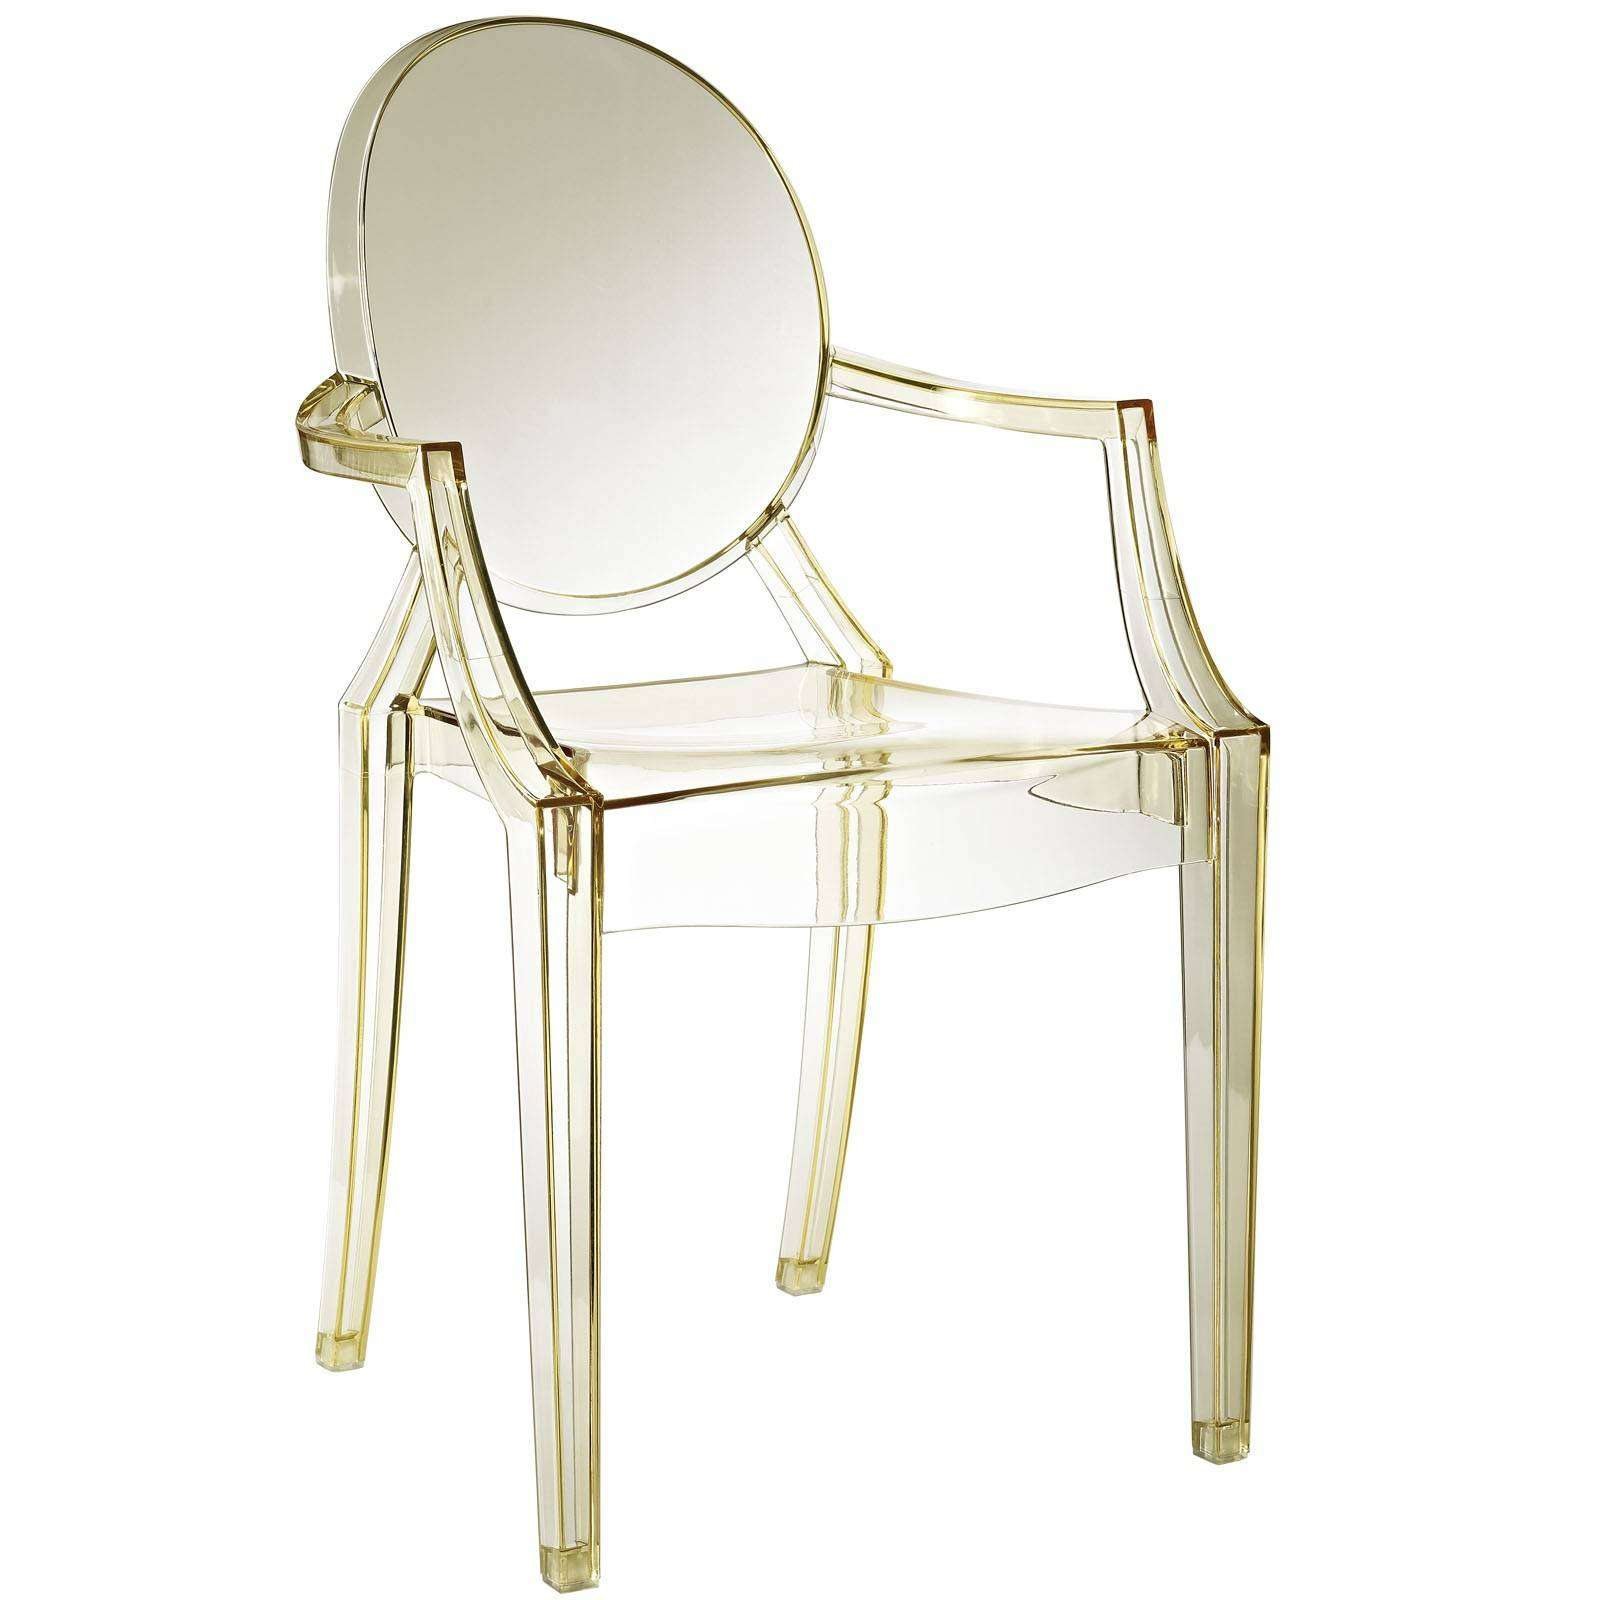 Philippe Starck Style Louis Ghost Arm Chair : EEI 121 YLW from www.modterior.com size 1600 x 1600 jpeg 191kB